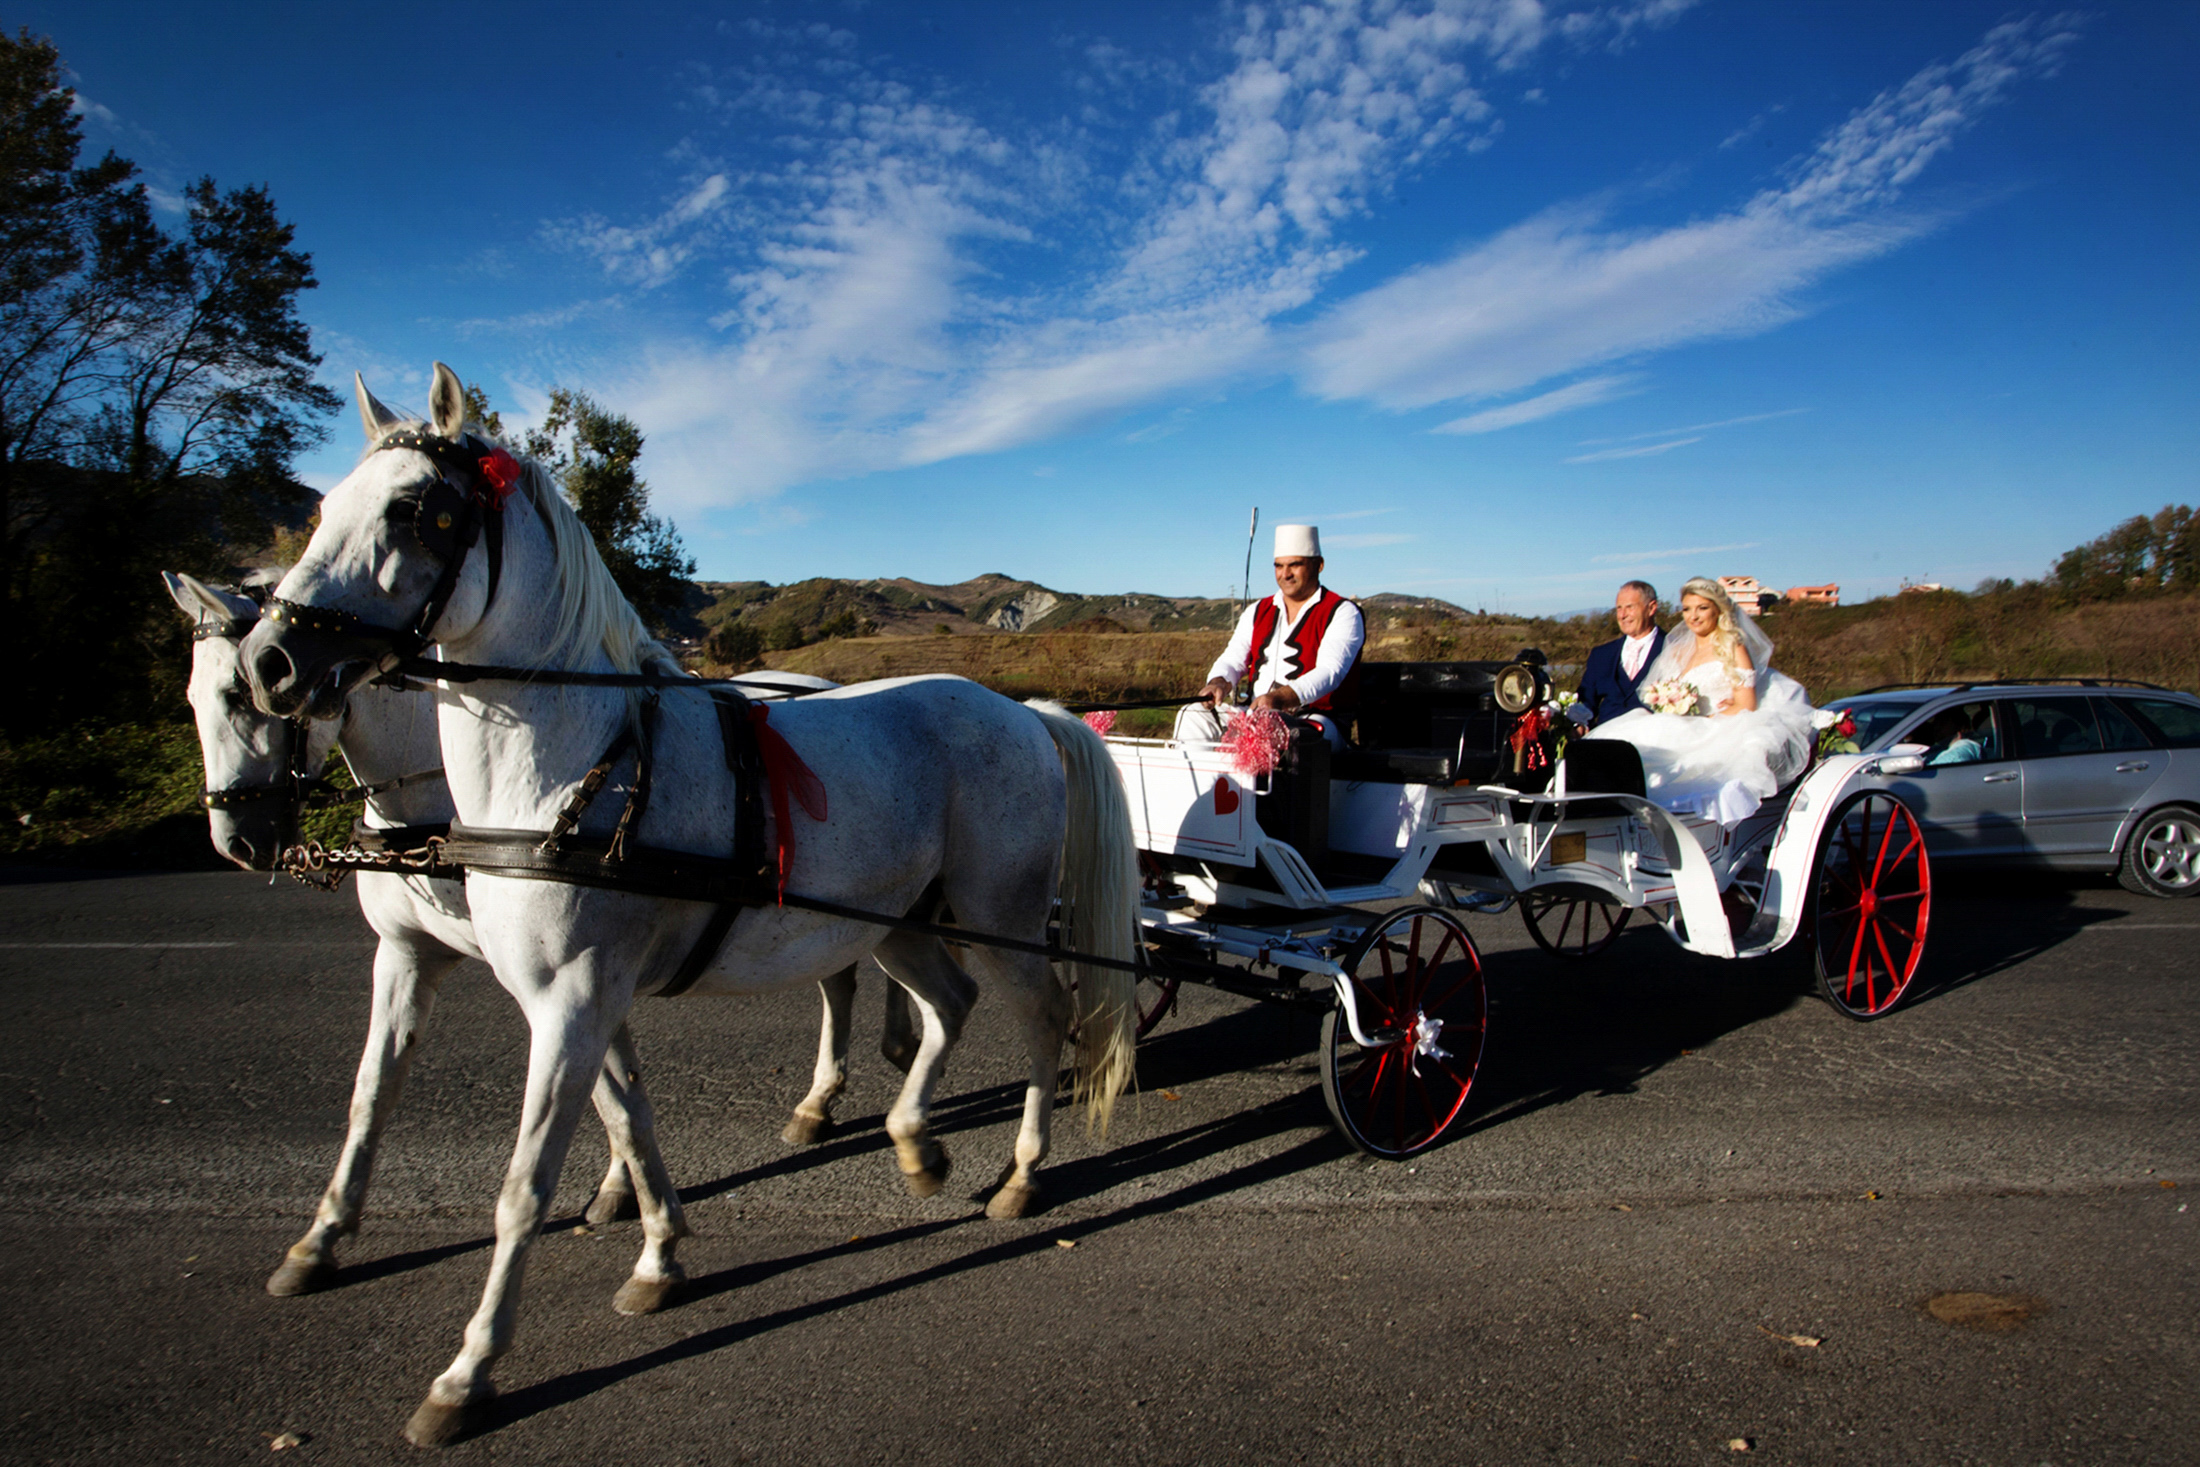 A horse drawn carriage is driving a bride and her father to the wedding venue outside of Tirana, Albania.